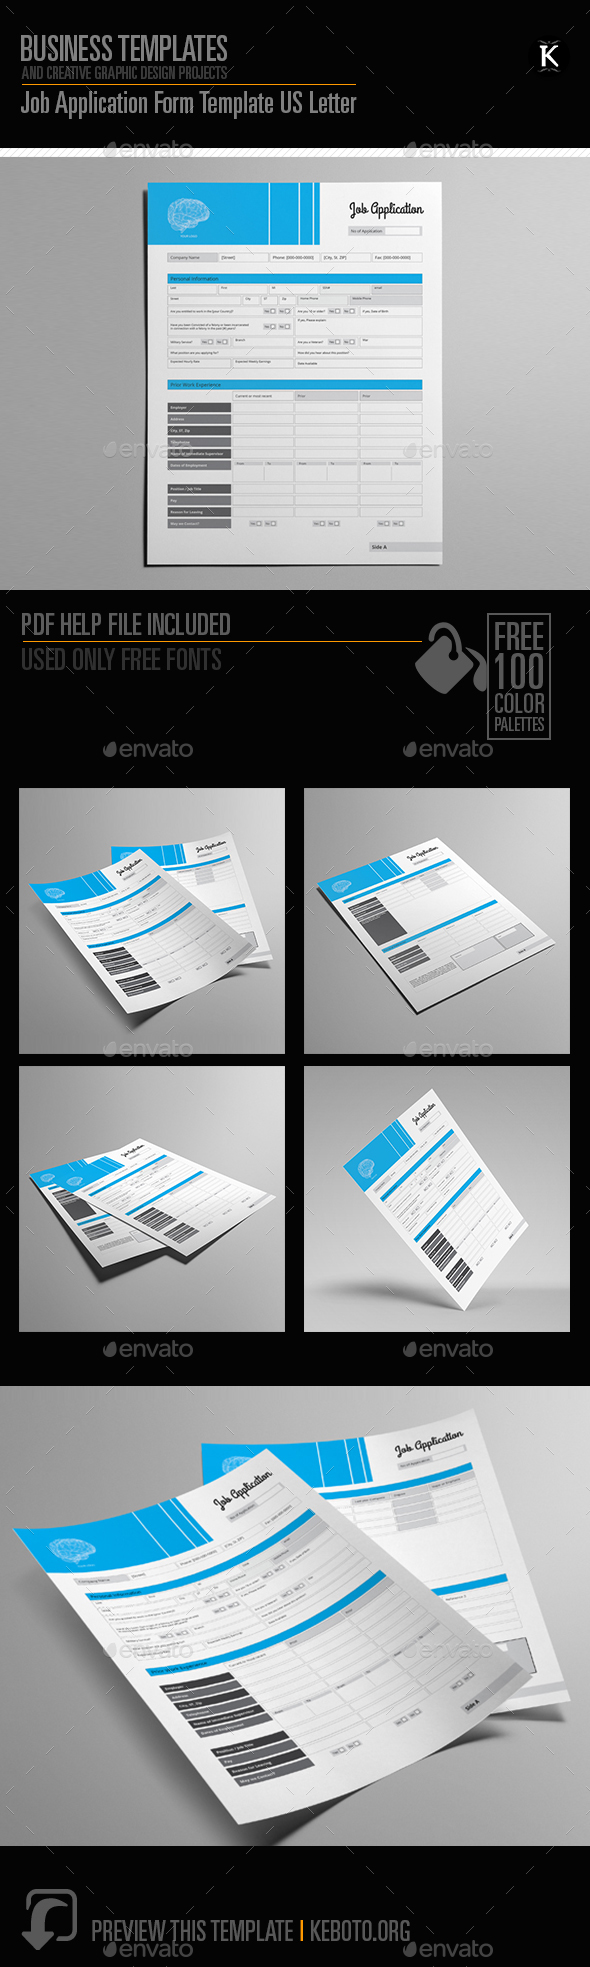 Job Application Form Template US Letter by Keboto | GraphicRiver